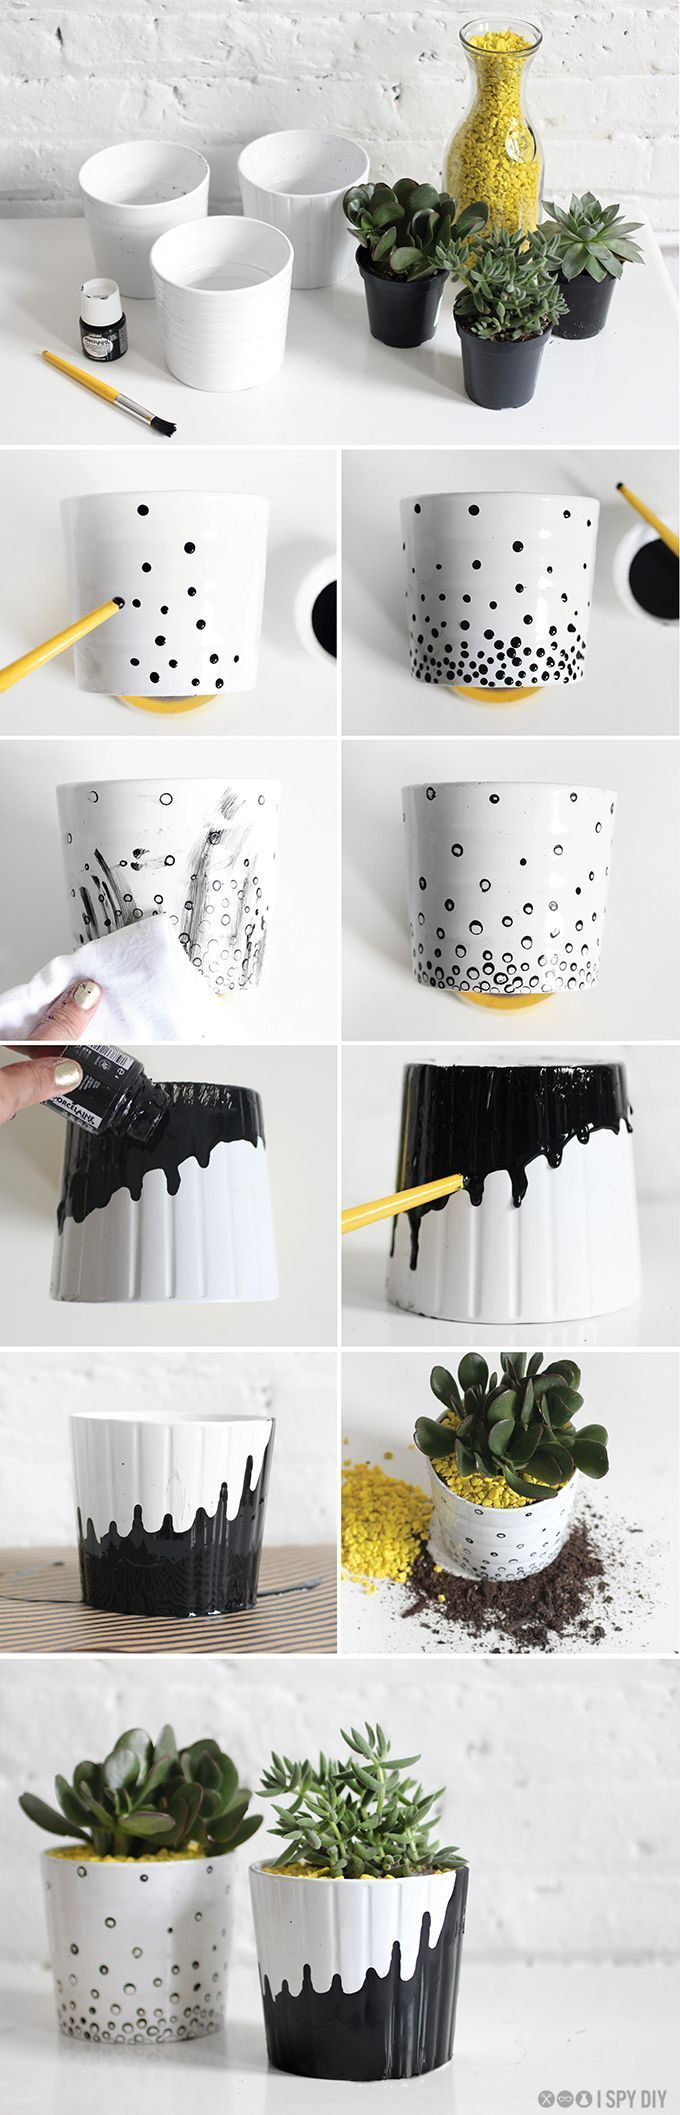 Spring In With Fresh Colorful New DIY Flower Pots Projects Spring is here already and we can't wait to see the trees and flowers blossom. Thus we have gathered a collection of DIY flower pots projects to help you prepare for this lovely season. The projects are all extremely easy and will bring life, color and joy to almost anything. Inventive and